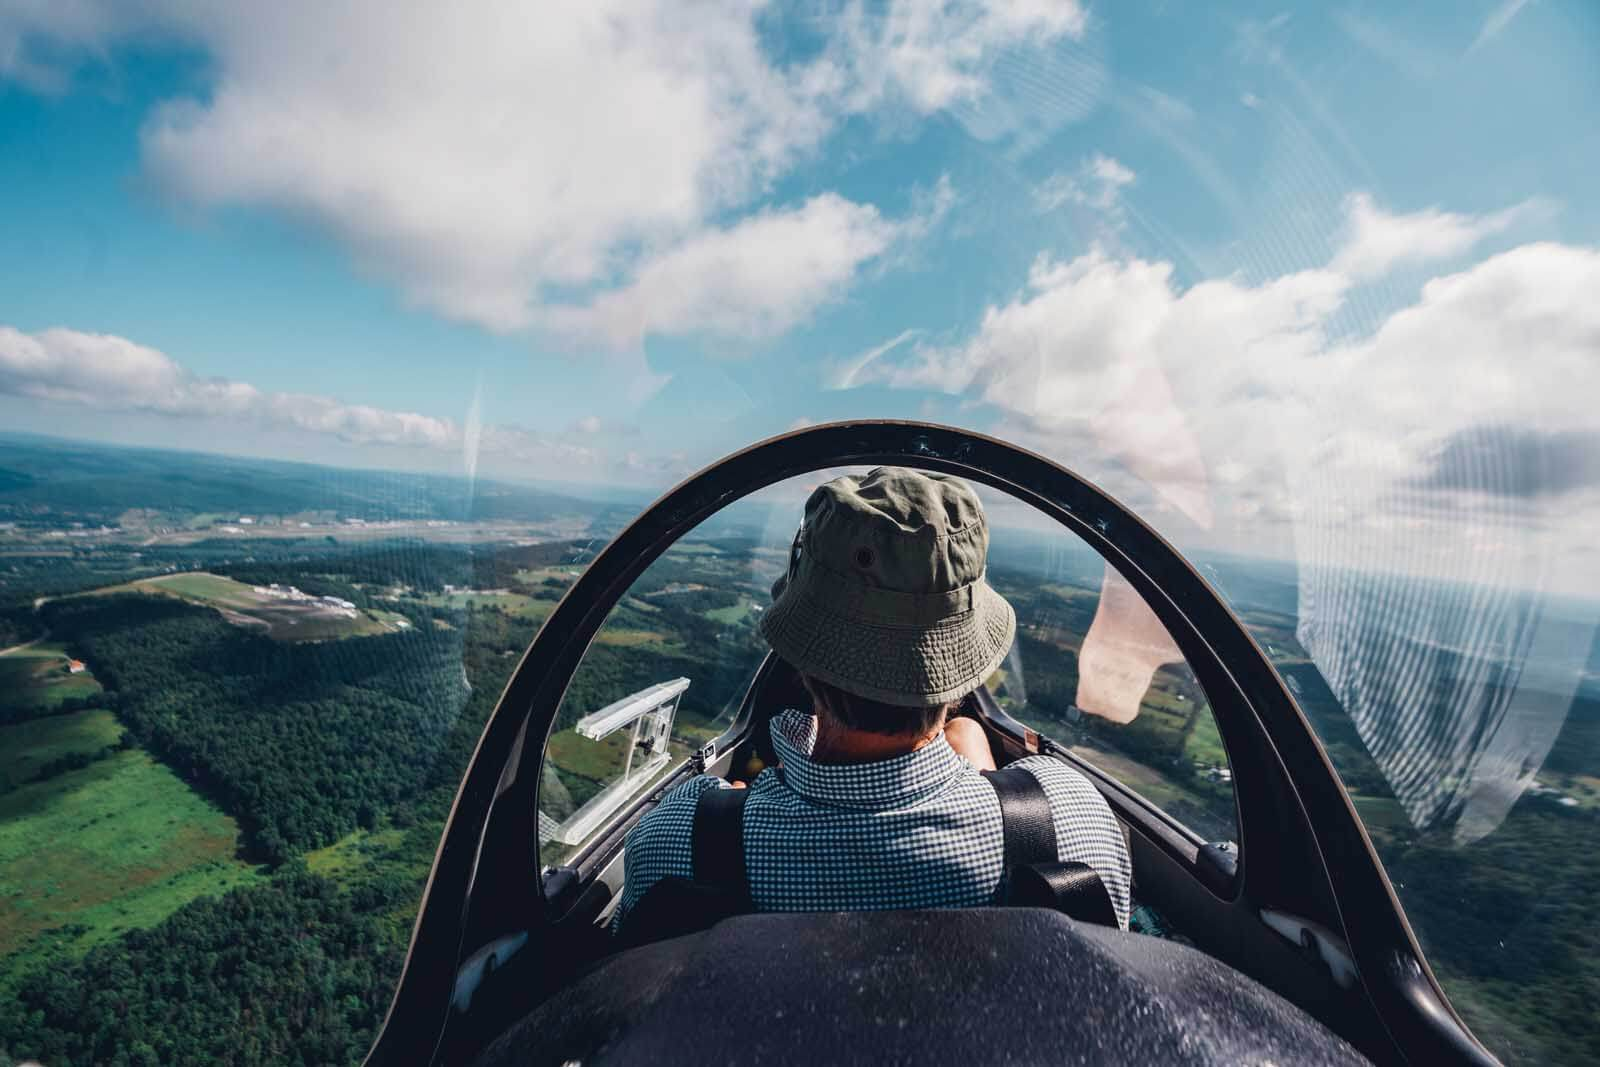 one of the most thrill seeking Finger Lakes activities is soaring in a glider at Harris Hill